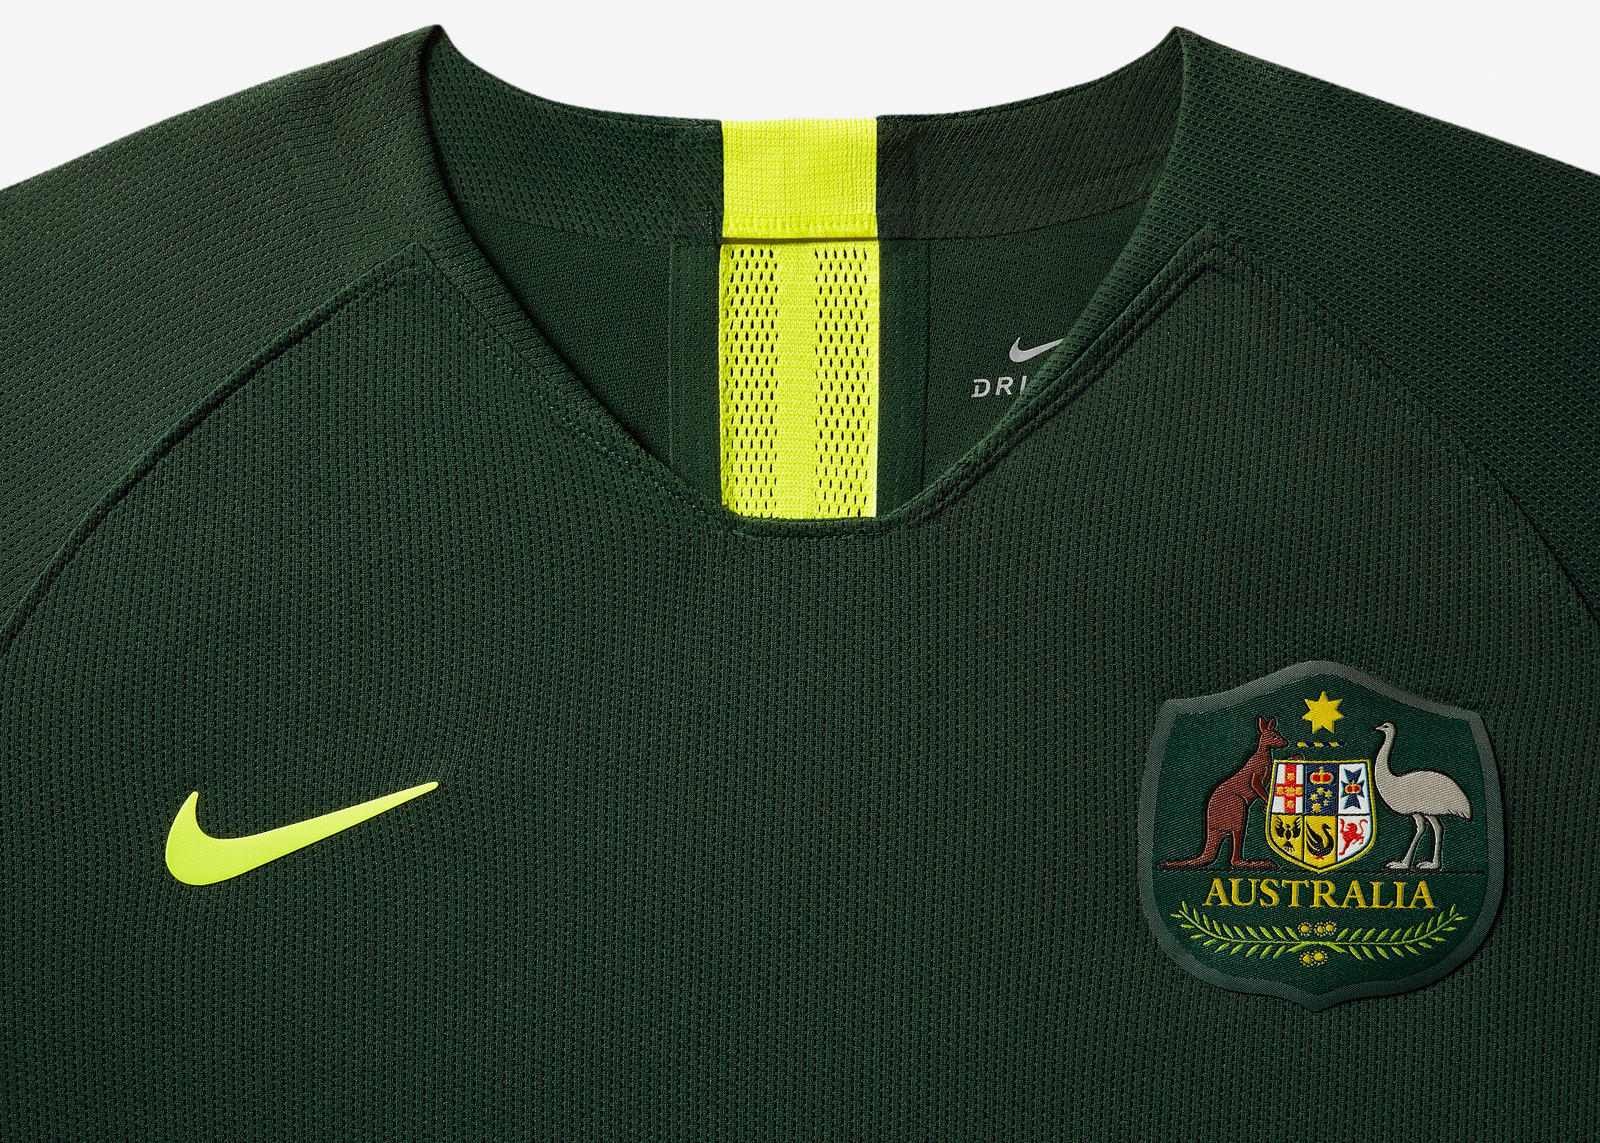 Australia National Team Kit 2019 0